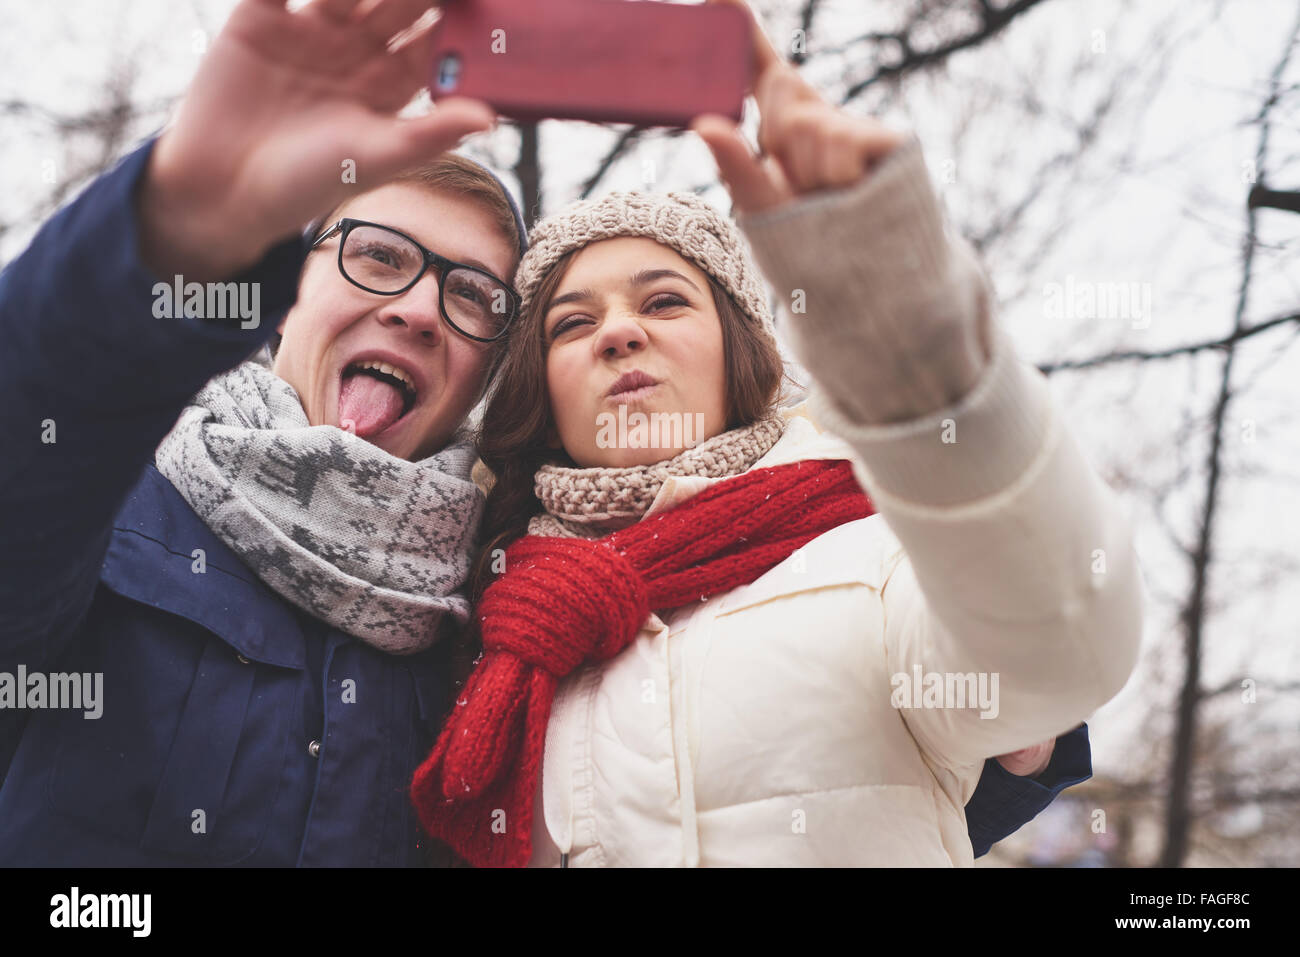 Young dates grimacing while making selfie - Stock Image